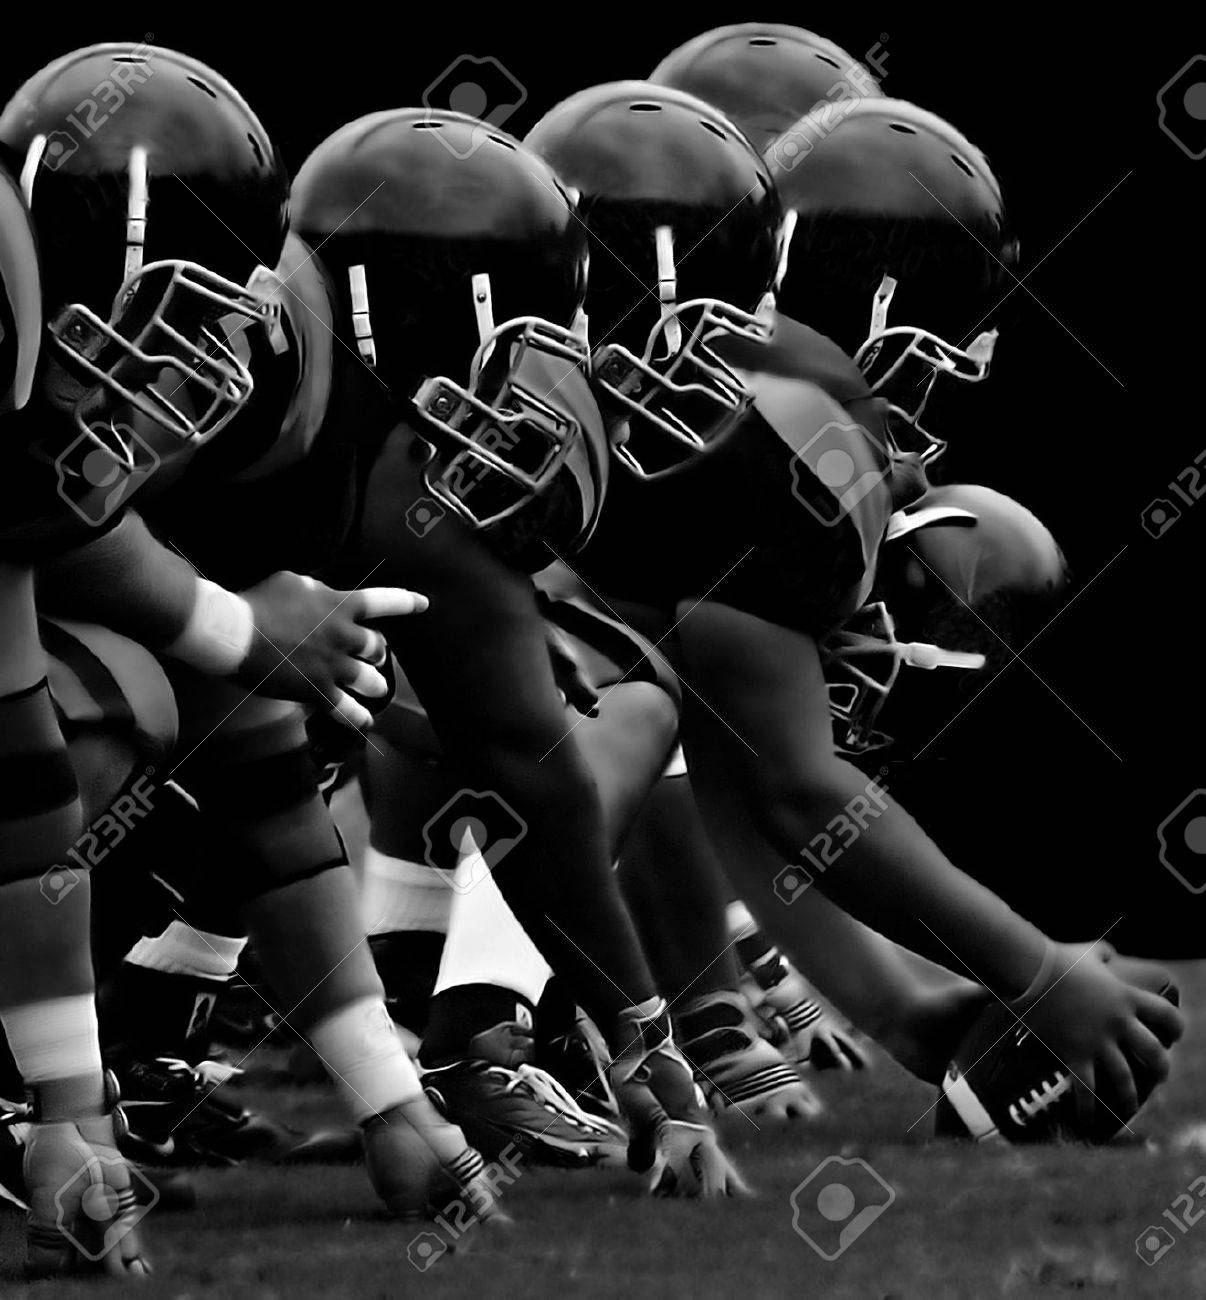 Impressive Image of the forward Line in American Football Stock Photo - 11273986